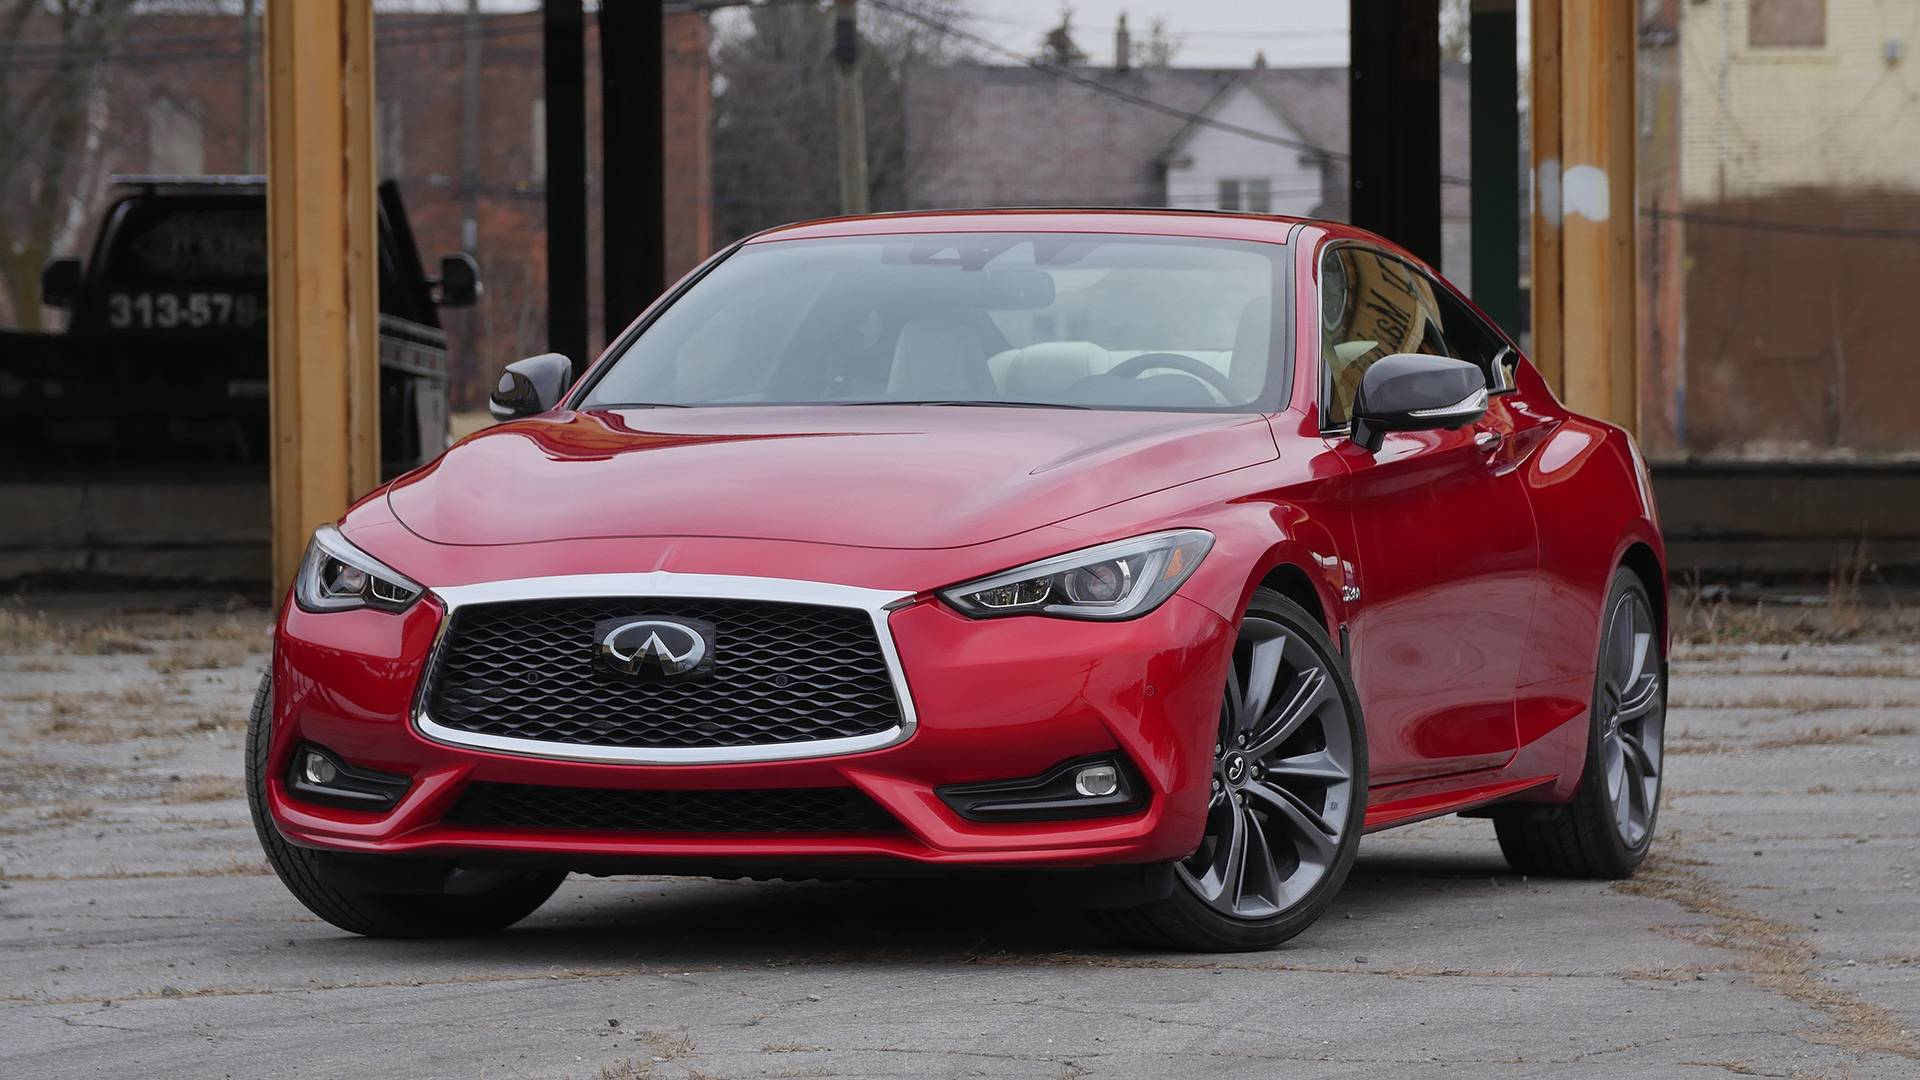 66 The Best 2020 Infiniti Q60s Rumors